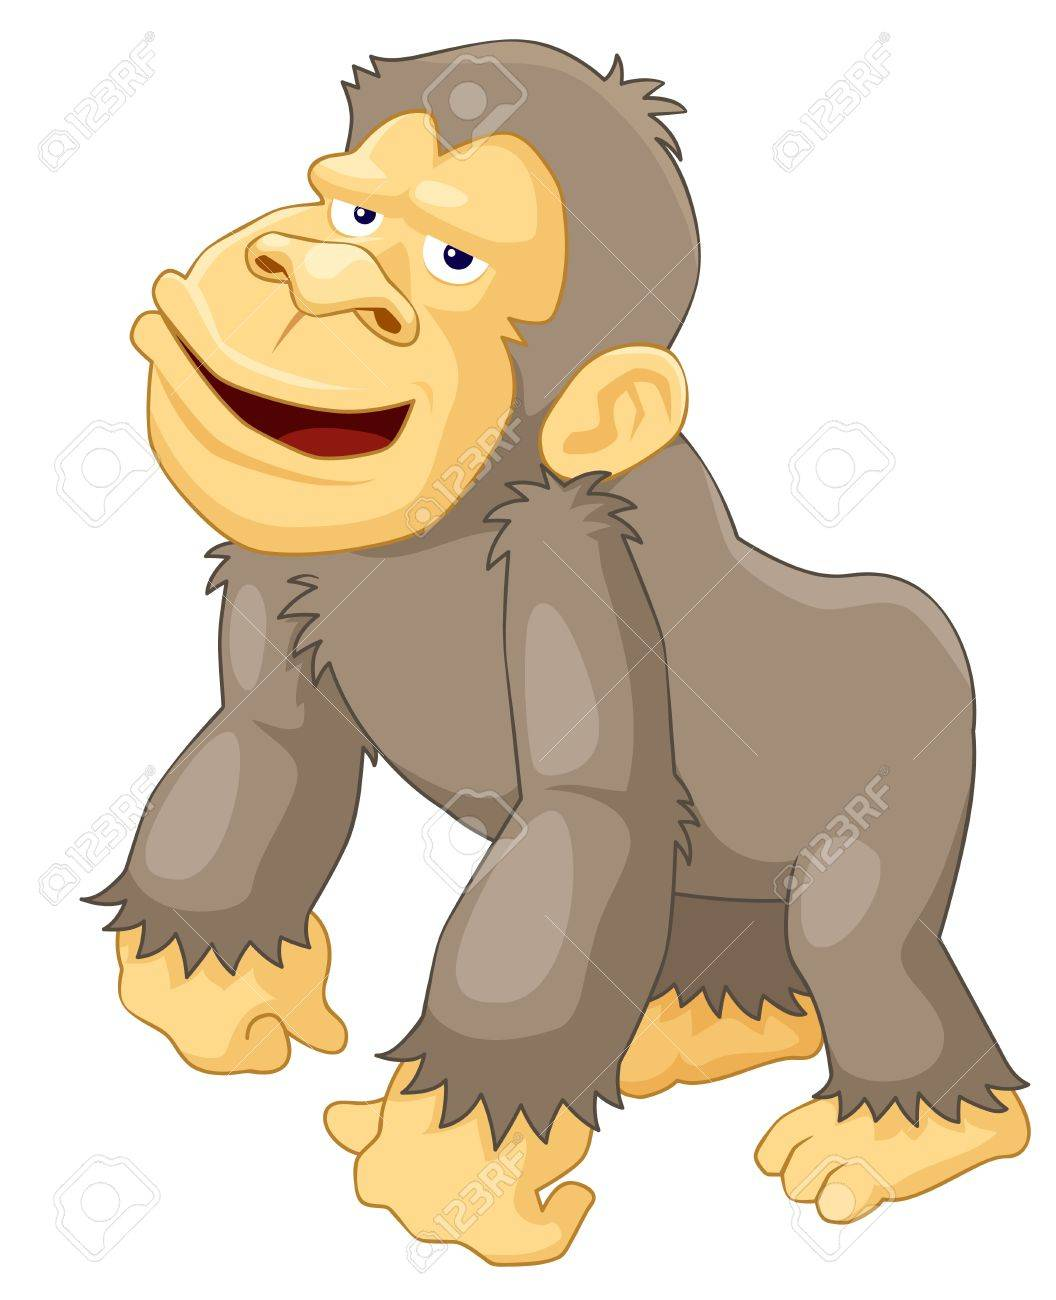 illustration of monkeys royalty free cliparts vectors and stock